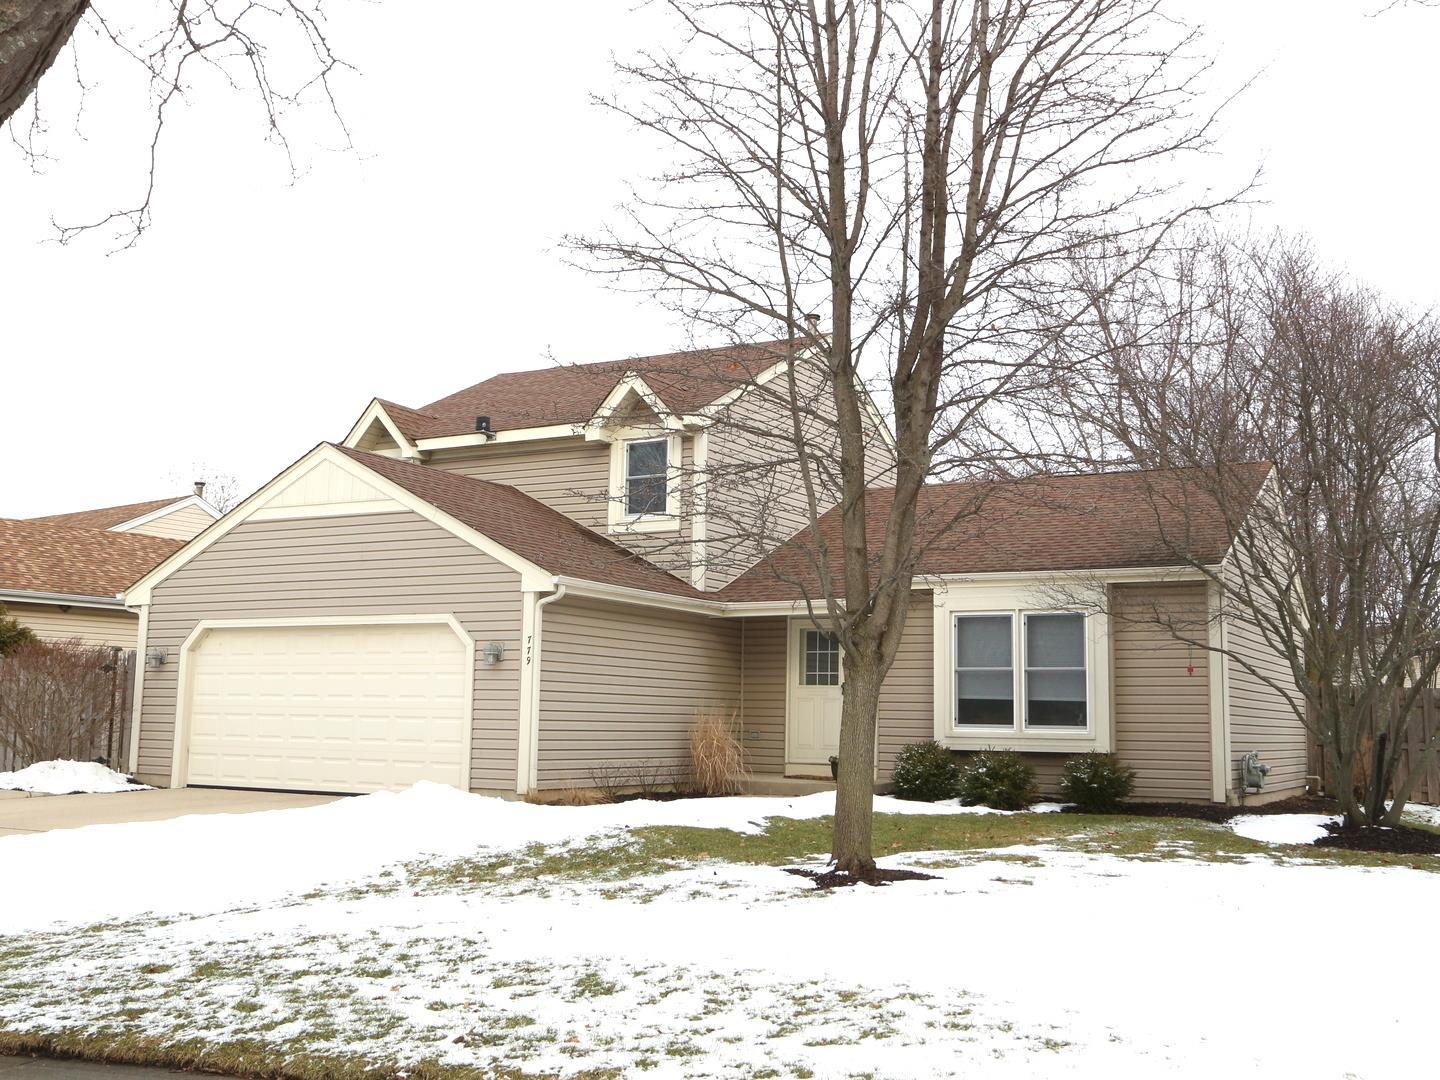 779 Covington Circle, Crystal Lake, IL 60014 - #: 10634819